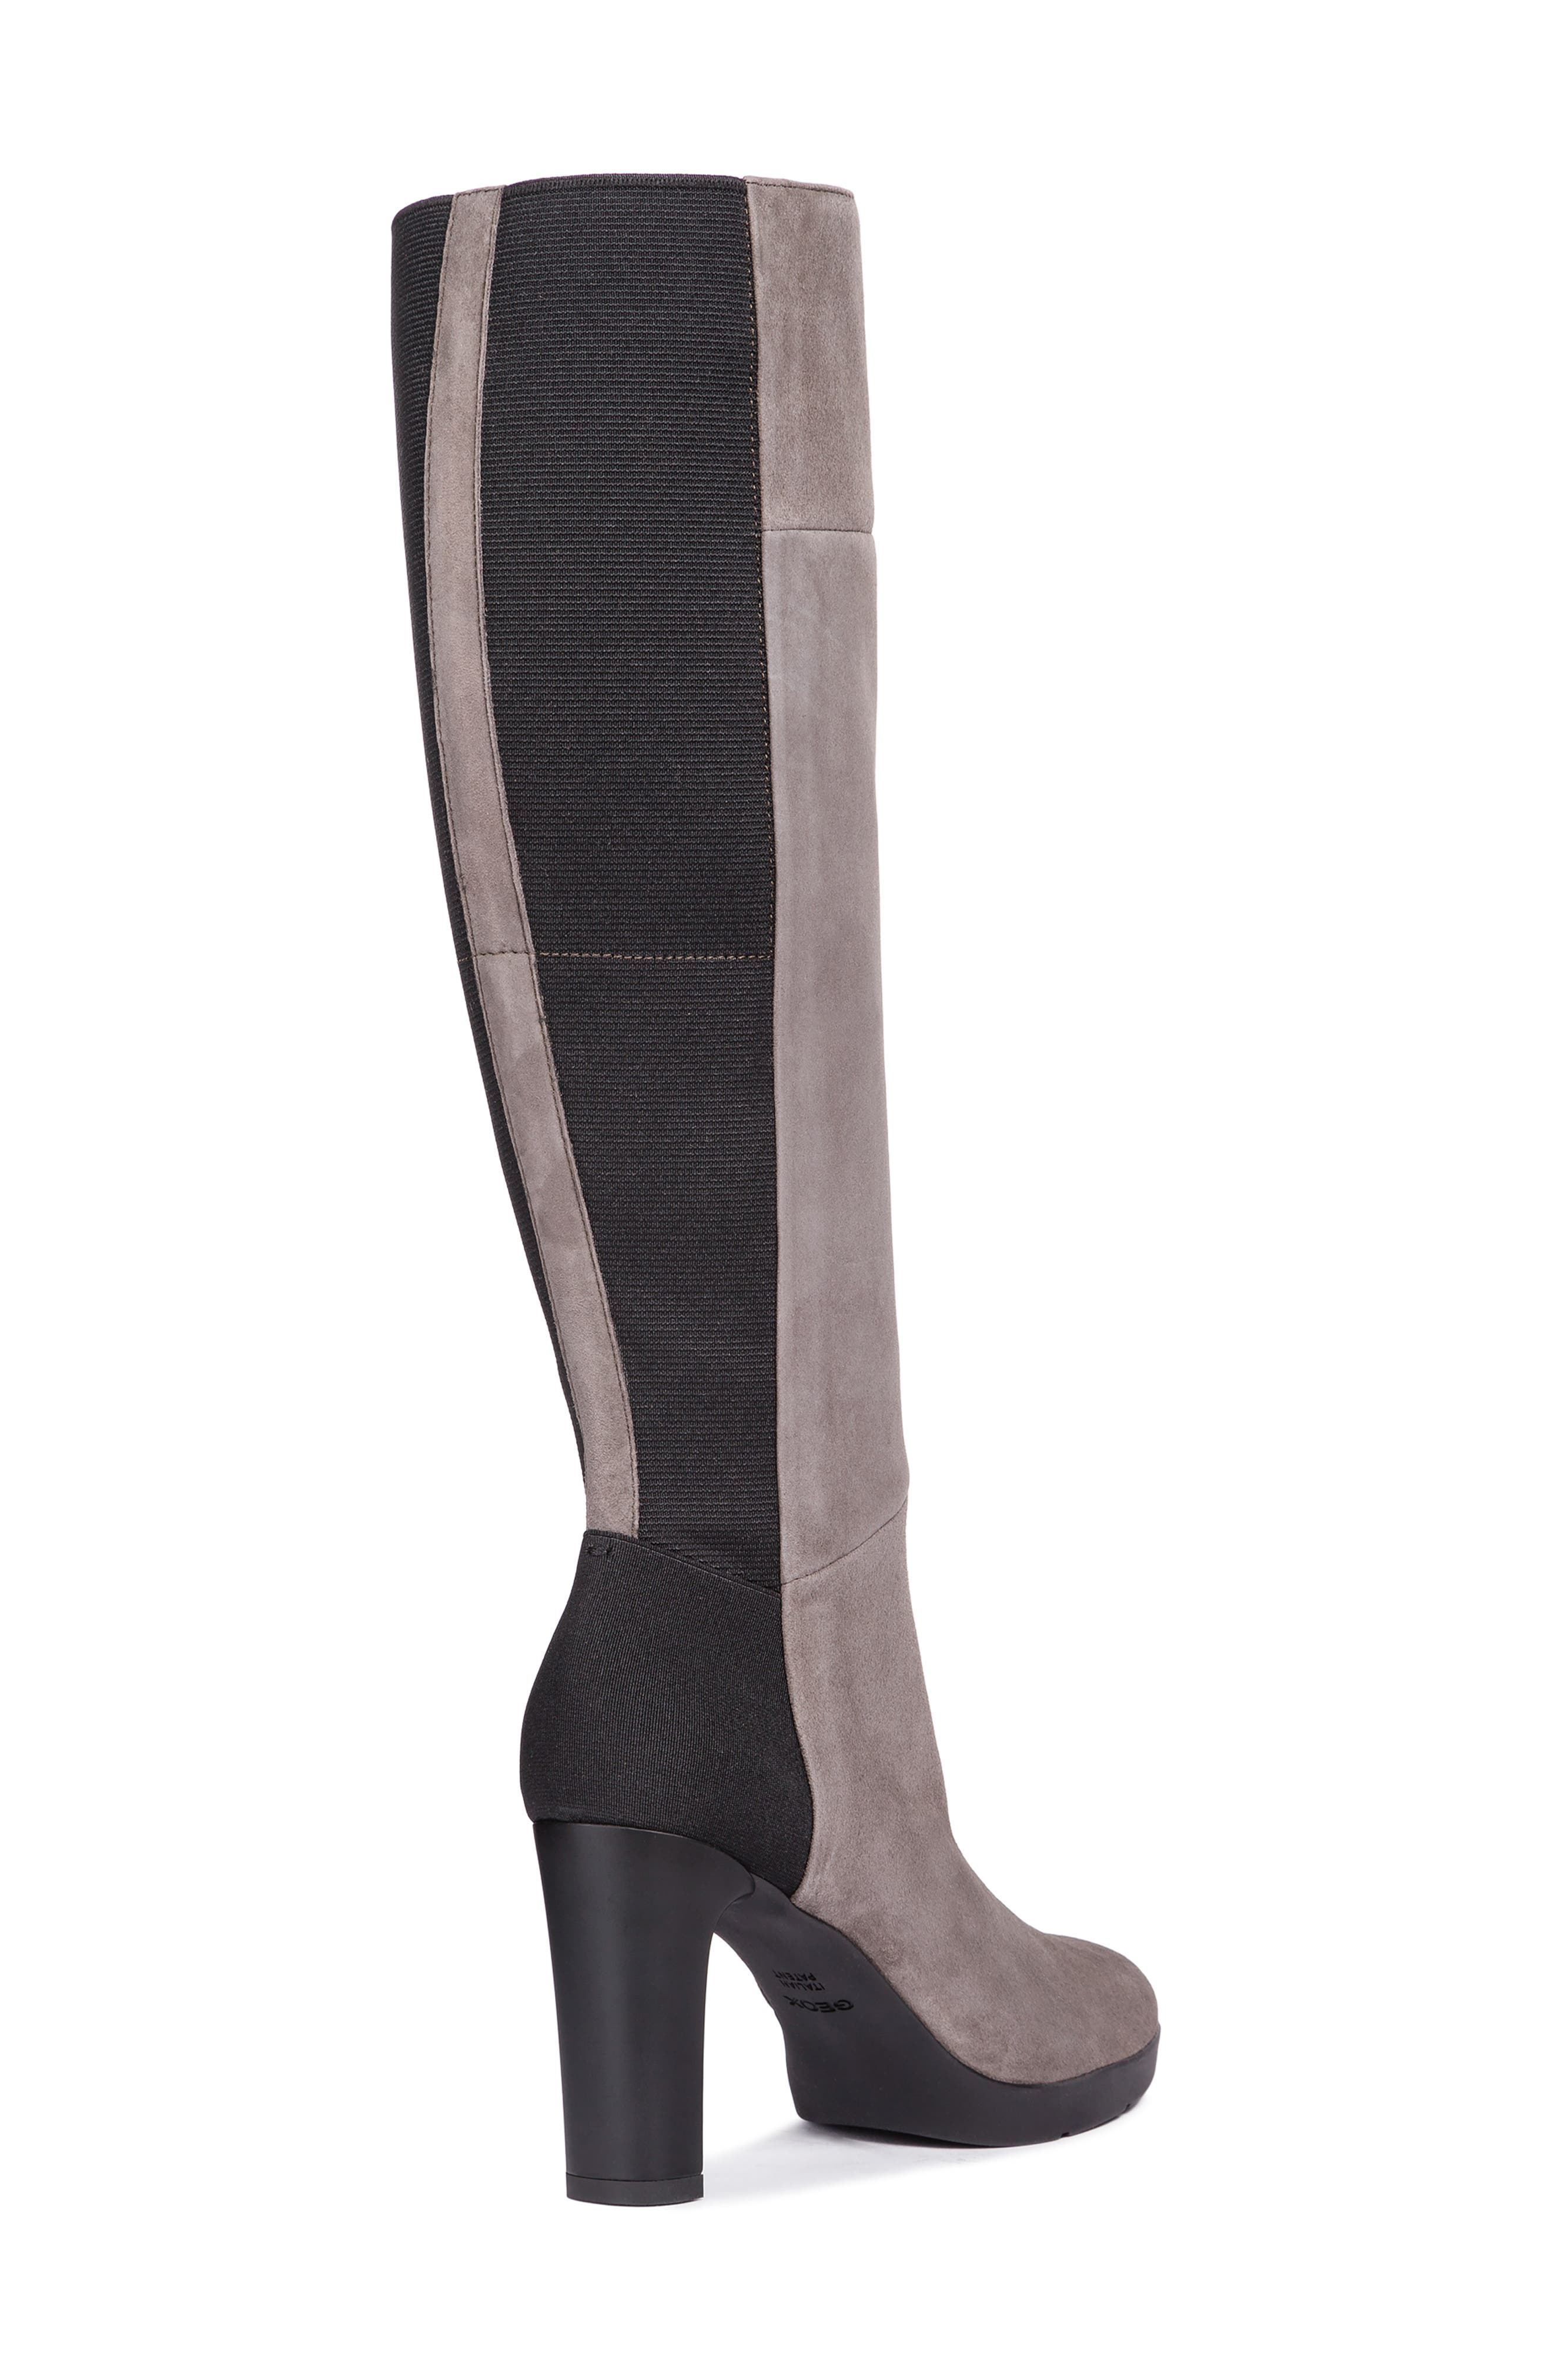 GEOX,                             Annya Knee High Boot,                             Alternate thumbnail 7, color,                             CHESTNUT SUEDE